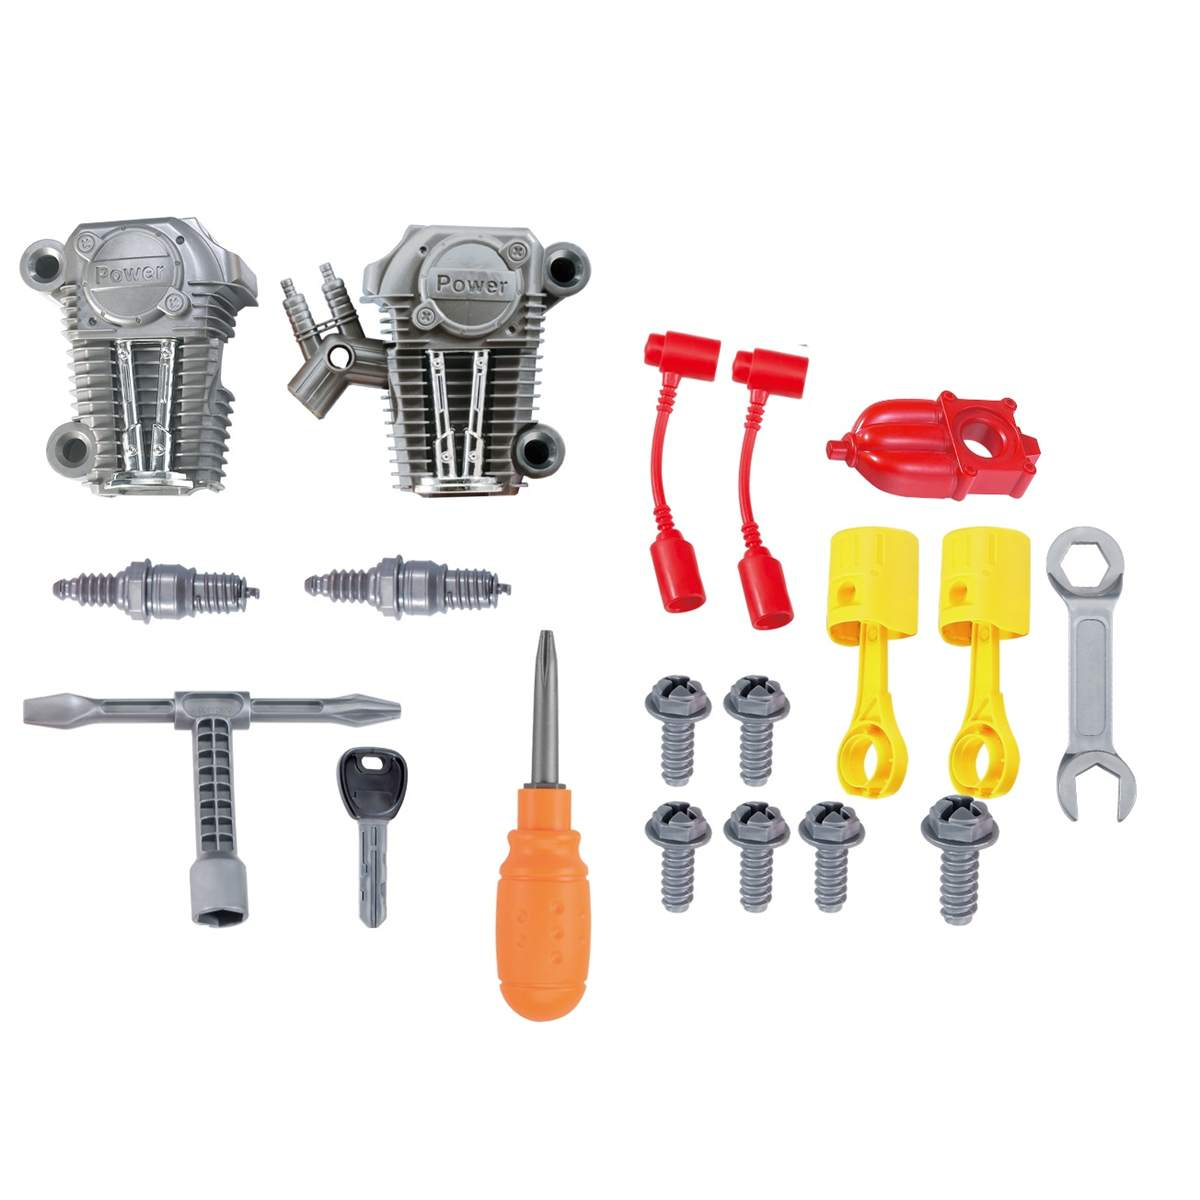 Motor Engine Toys Puzzle Disassembly Assembly Hands On DIY Repair Tools Set Model Building Kits Boys Children Kids Gifts